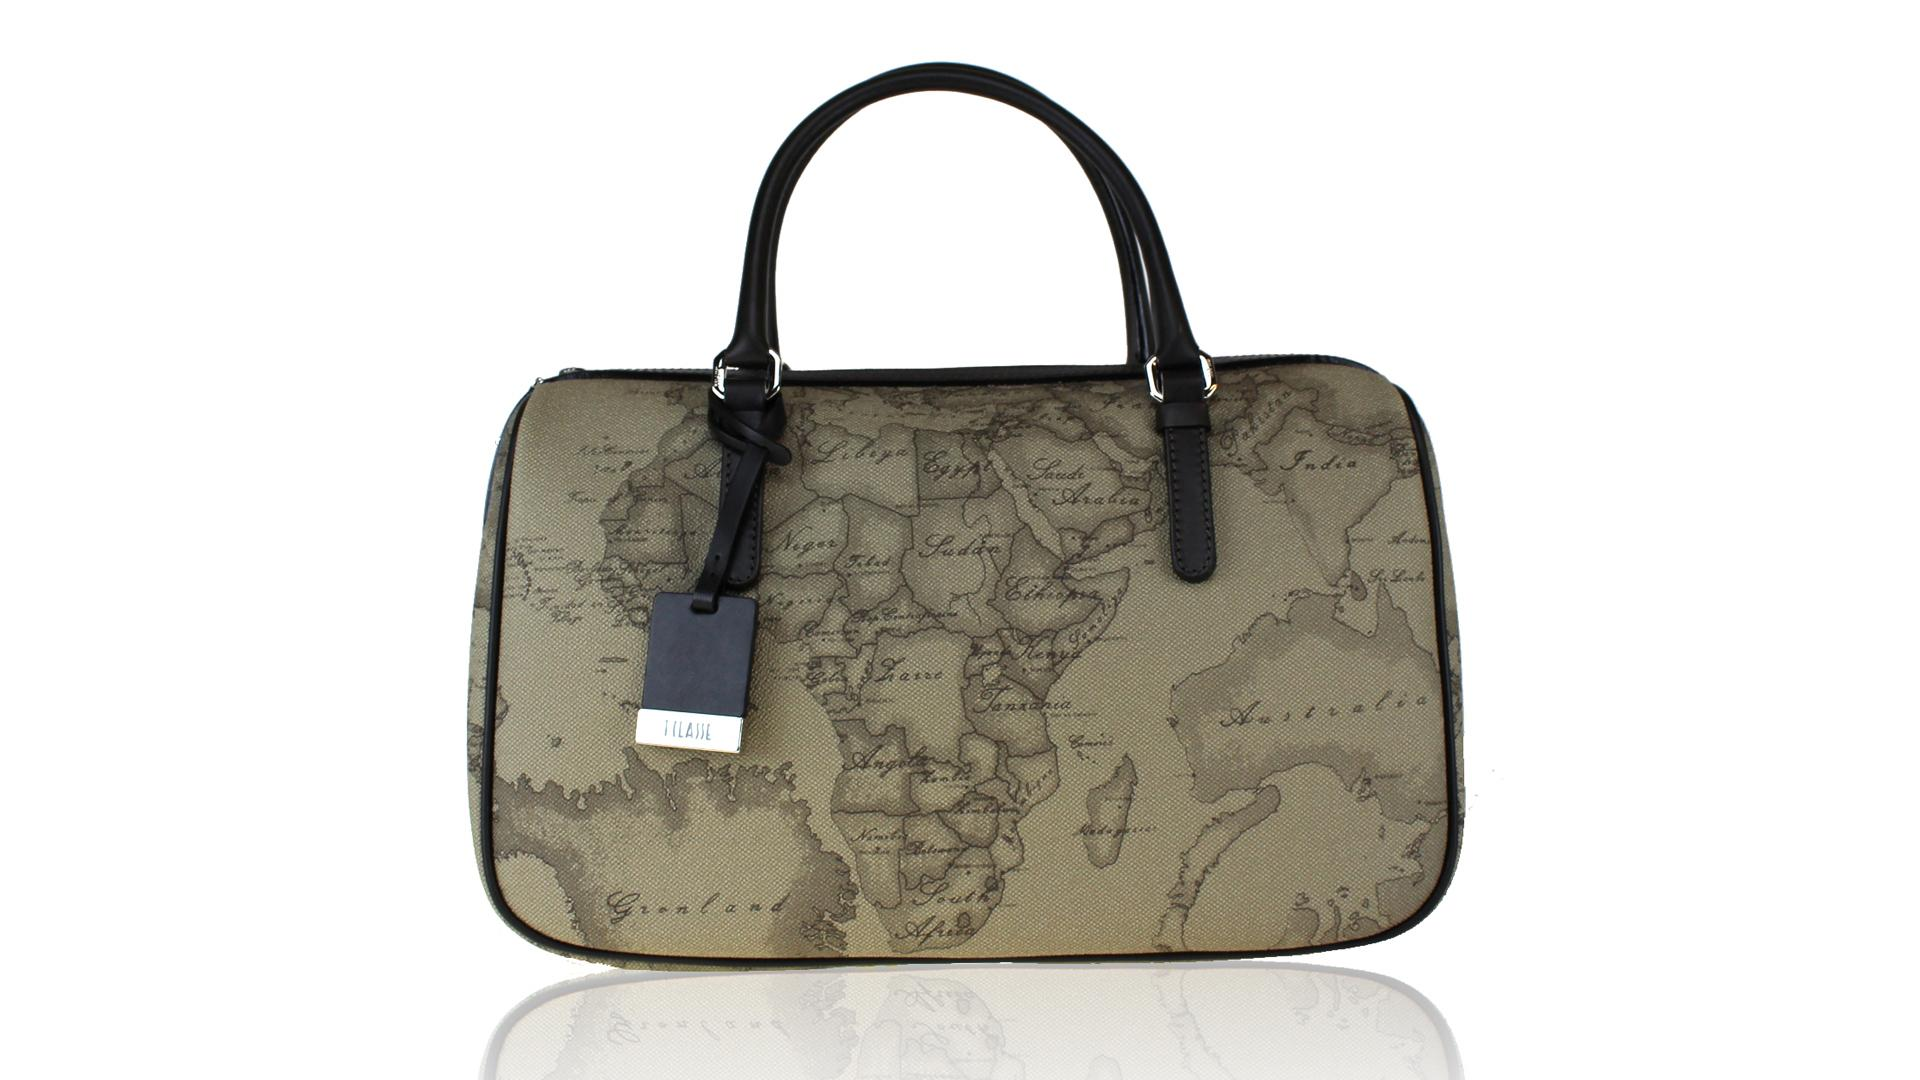 Hand and shoulder bag  Alviero Martini 1A Classe New Basic N129 6130 590 Tortora